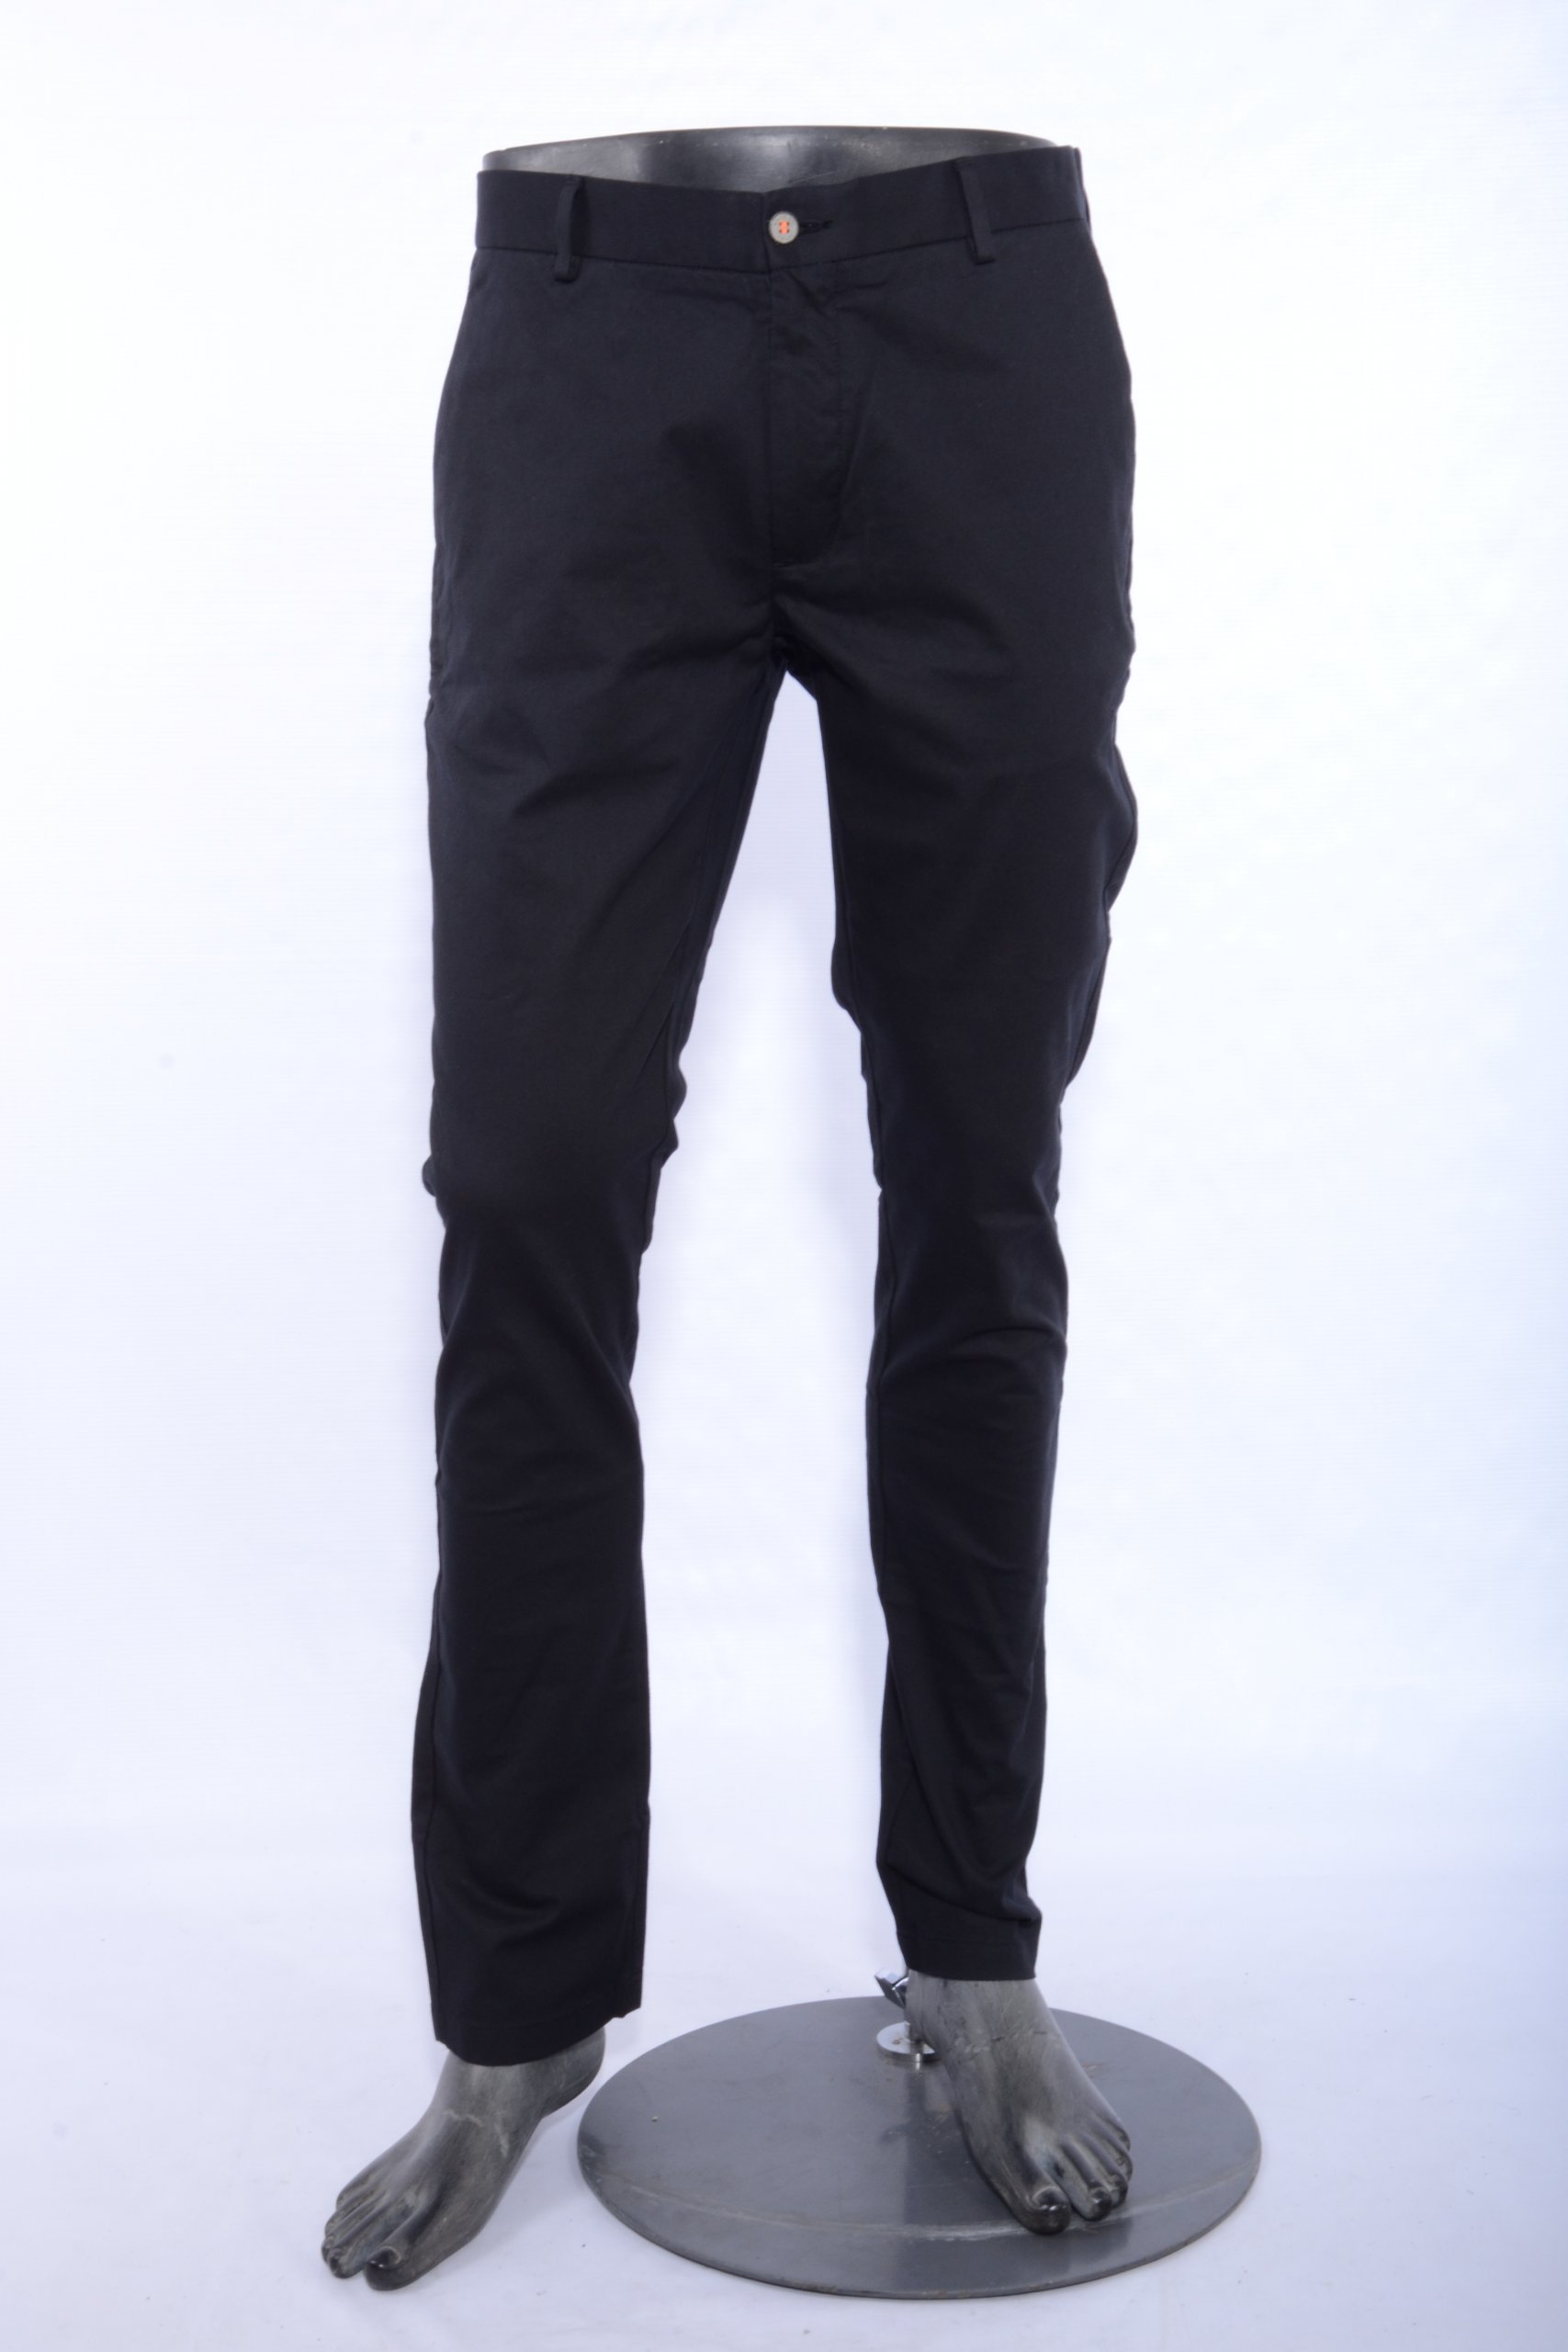 Black Coloured Trouser by Black Berry